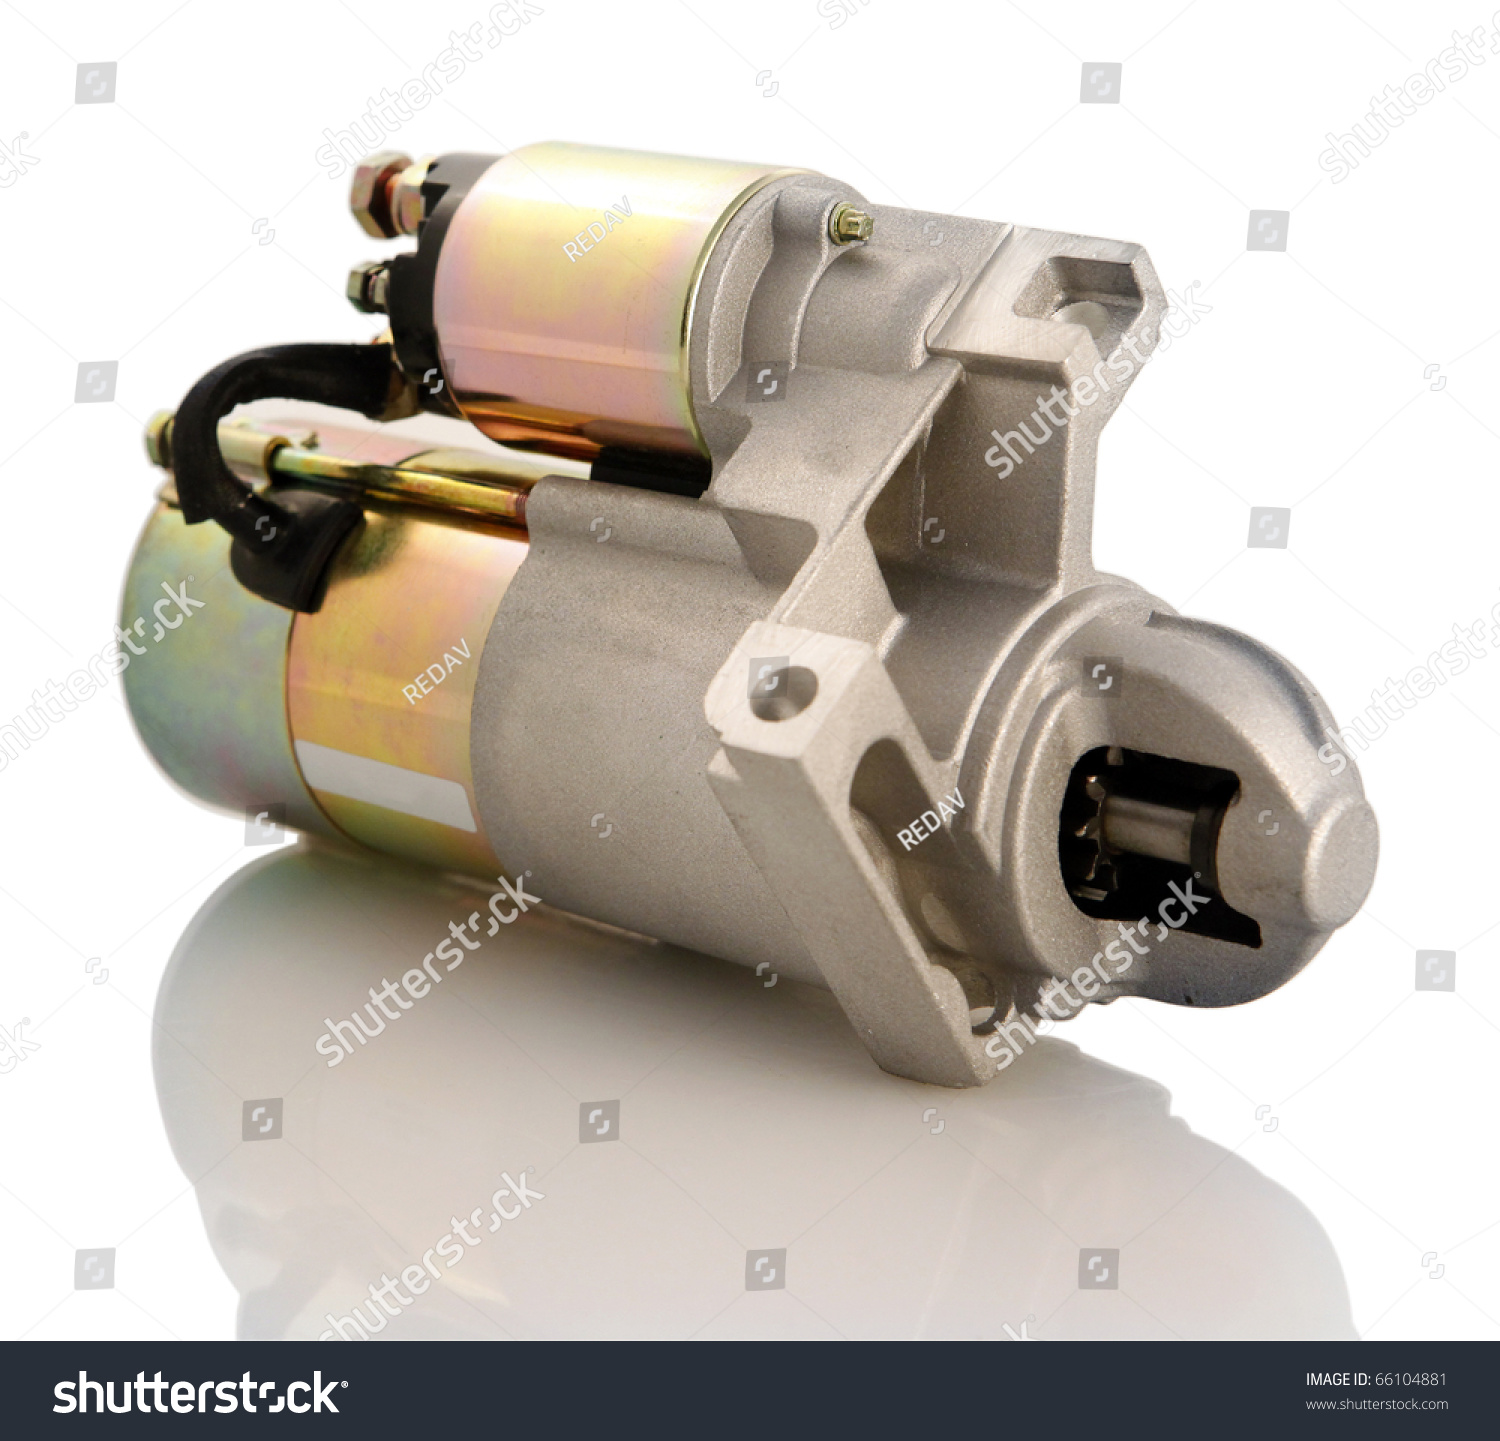 Bench Testing A Starter Motor: How Does A Solenoid Work On A Starter Motor